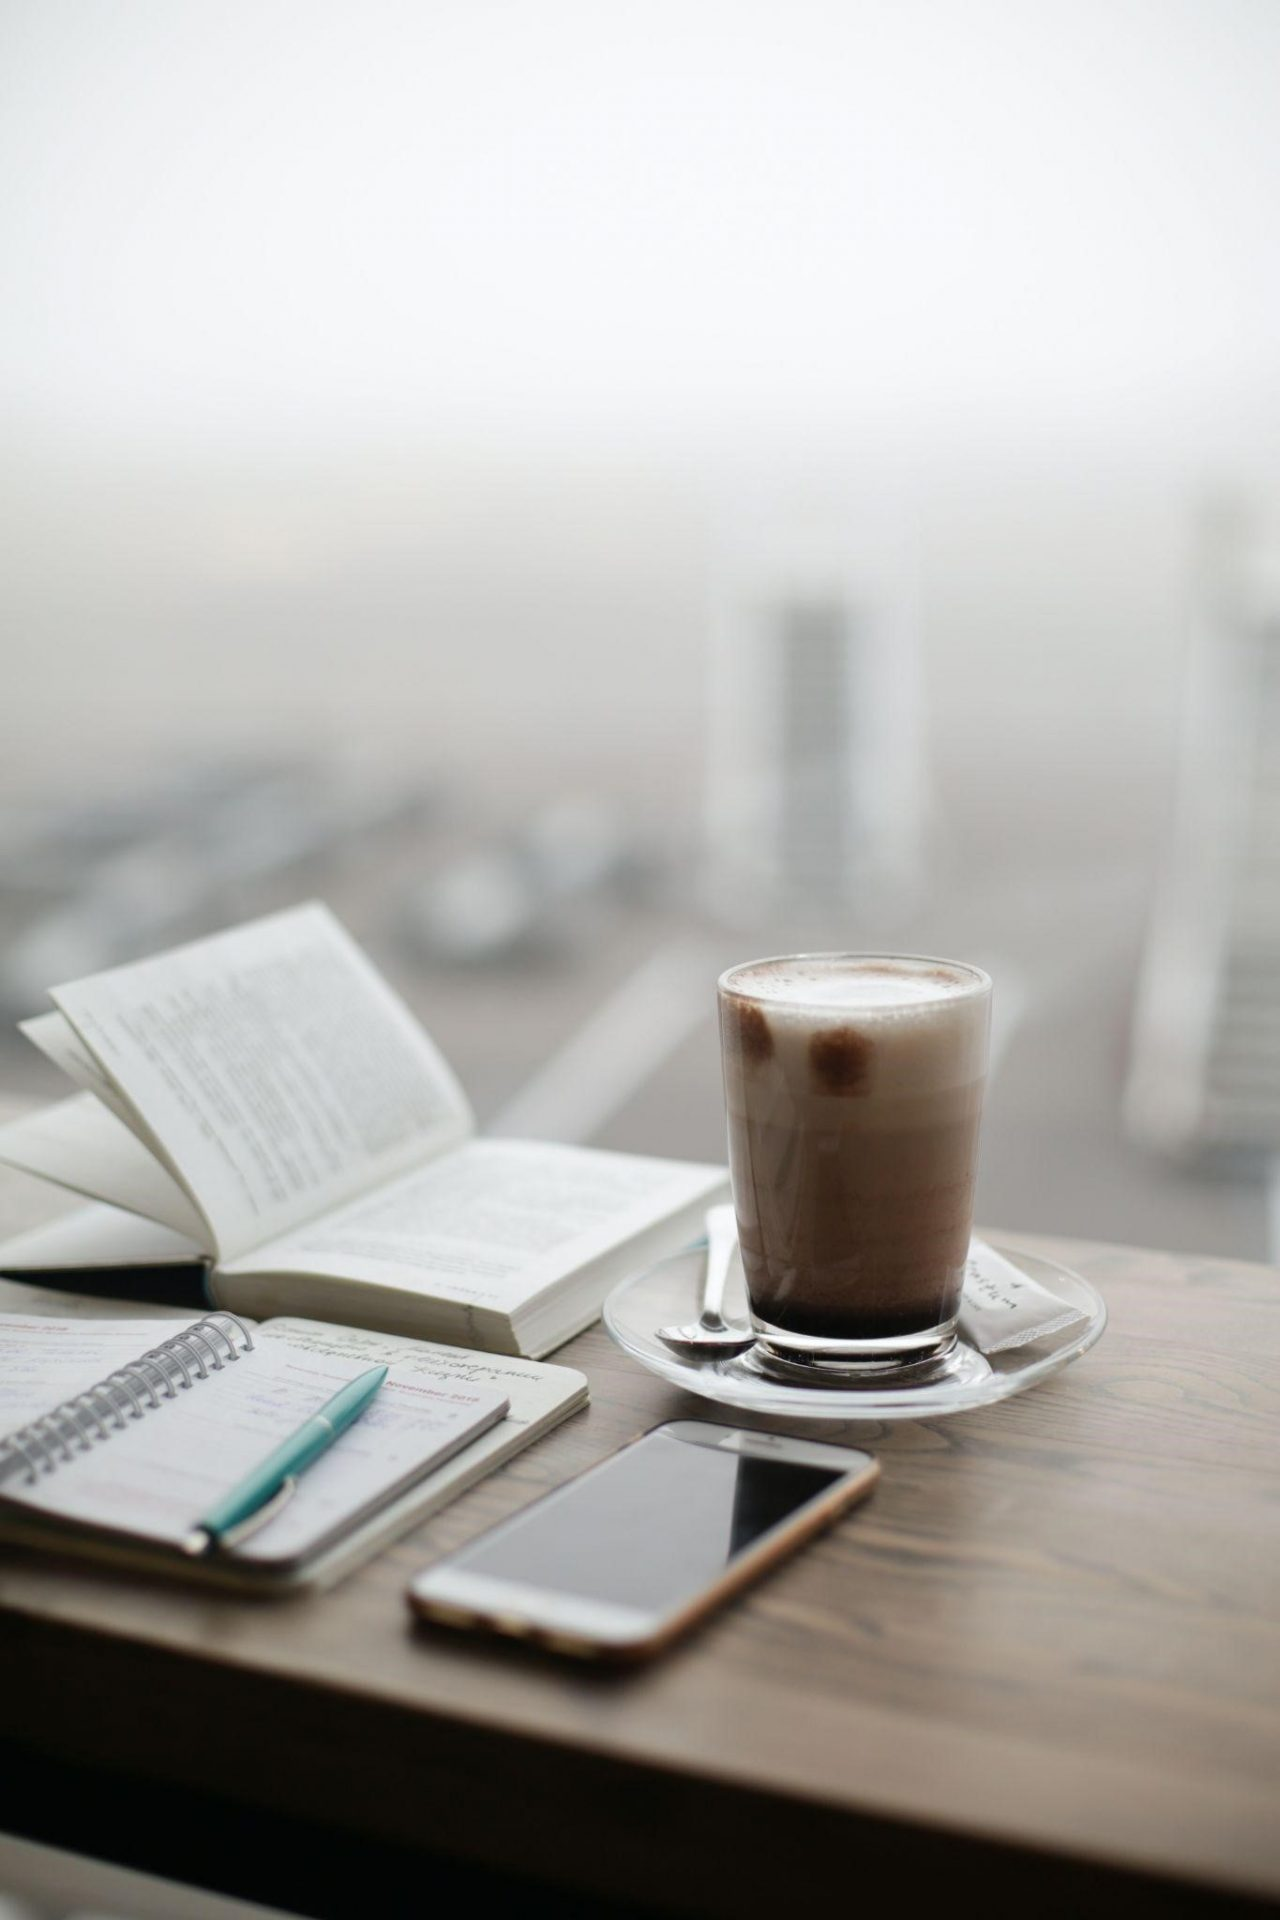 A table in a luxury condominium with a book, notebook, pen, phone, and barista-style coffee | Luxury Homes by Brittany Corporation